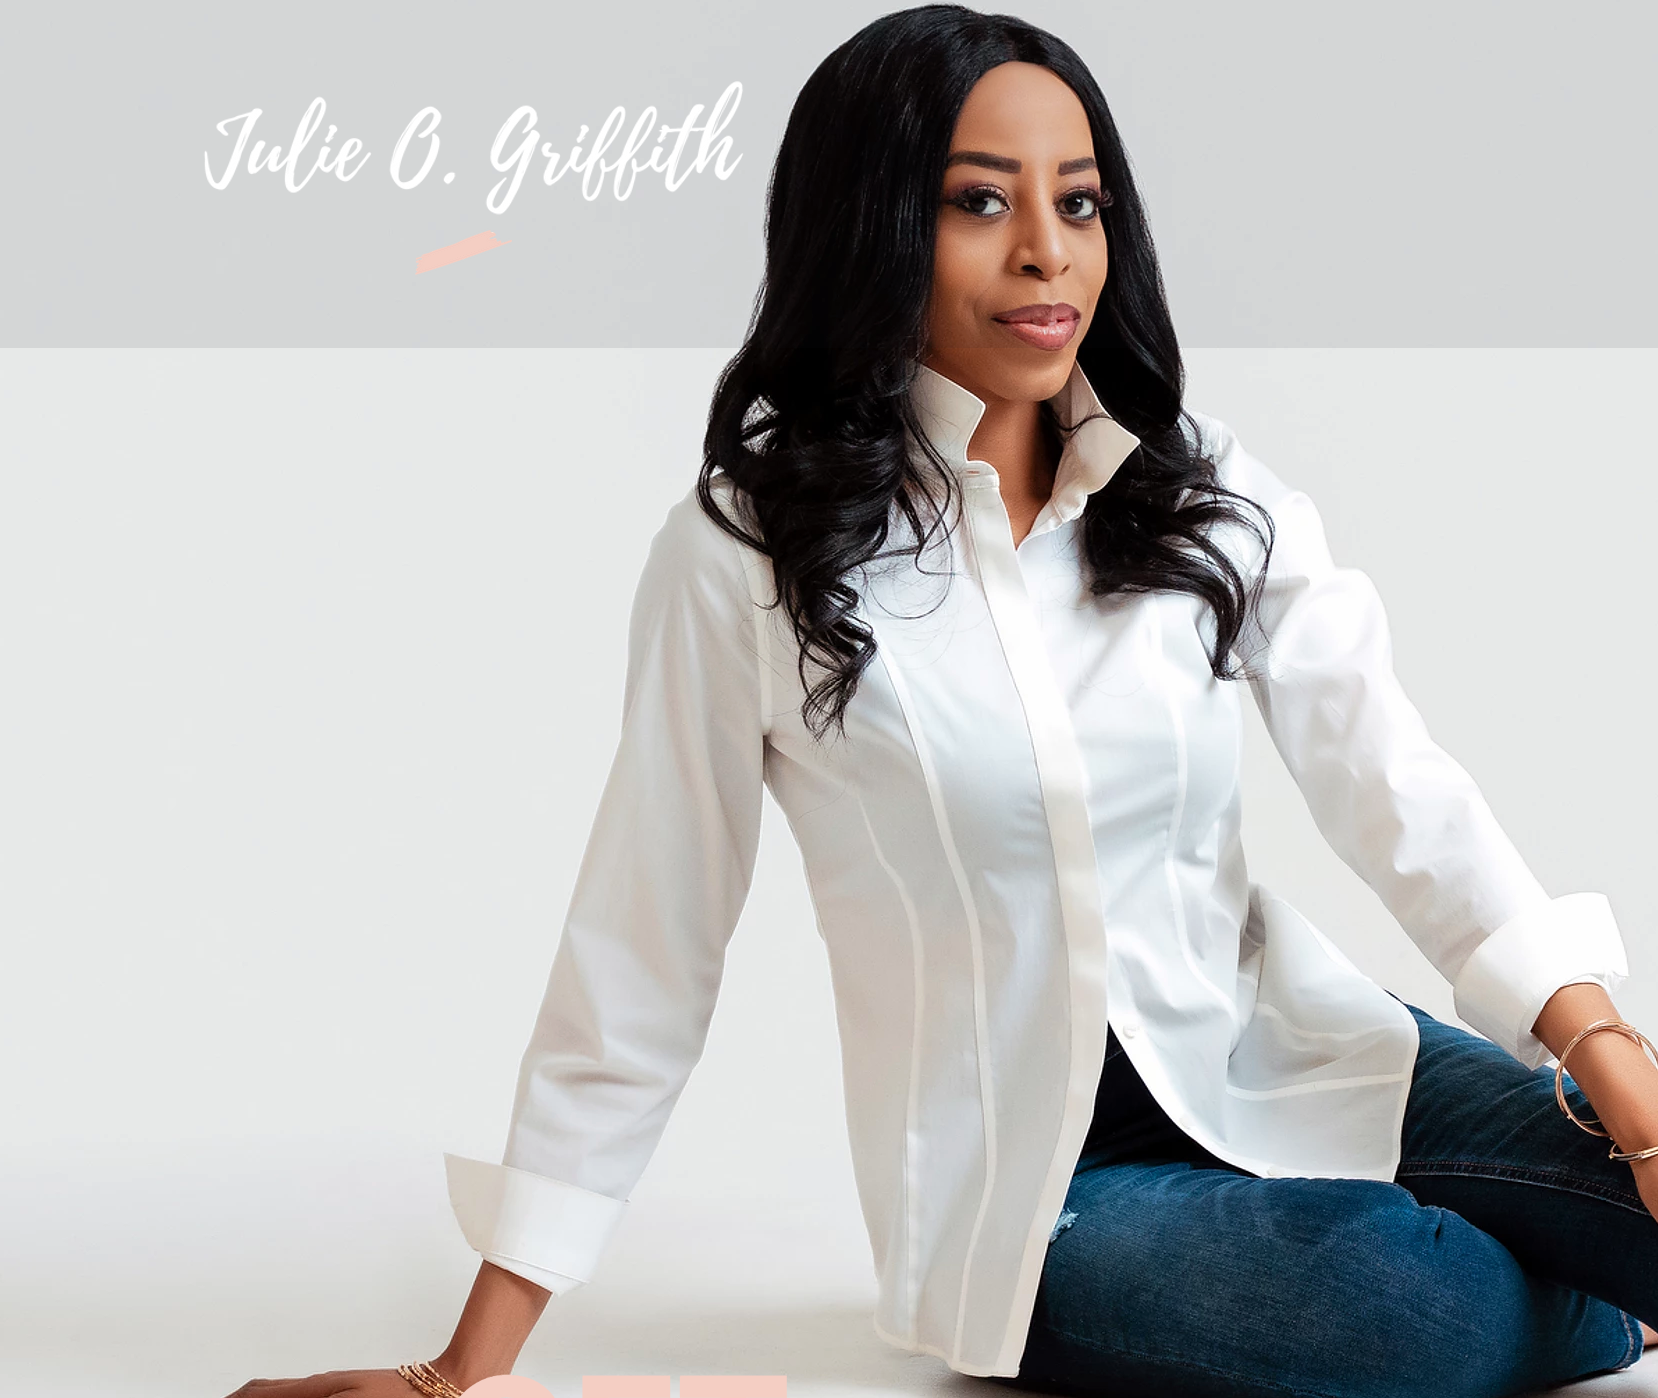 Julie O. Griffith PR